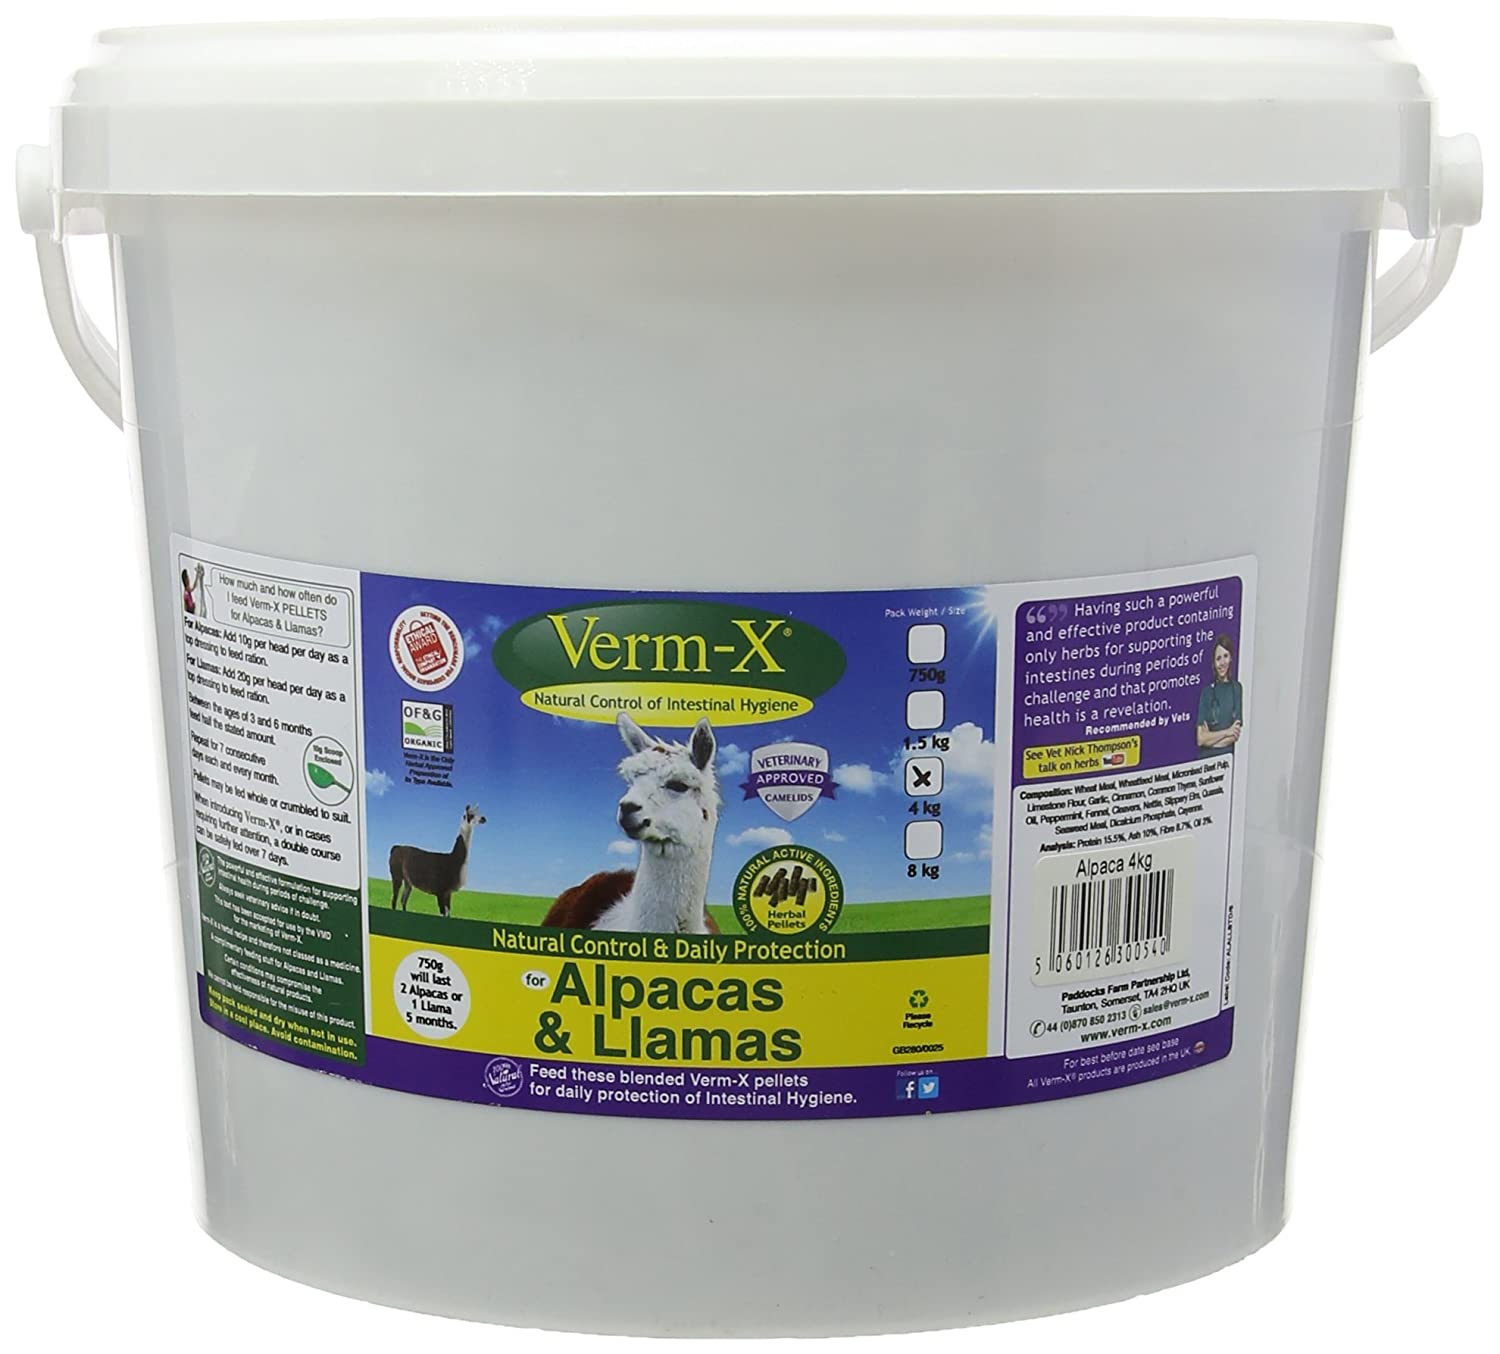 Verm-X for Alpacas and Llamas, 4 kg Yes